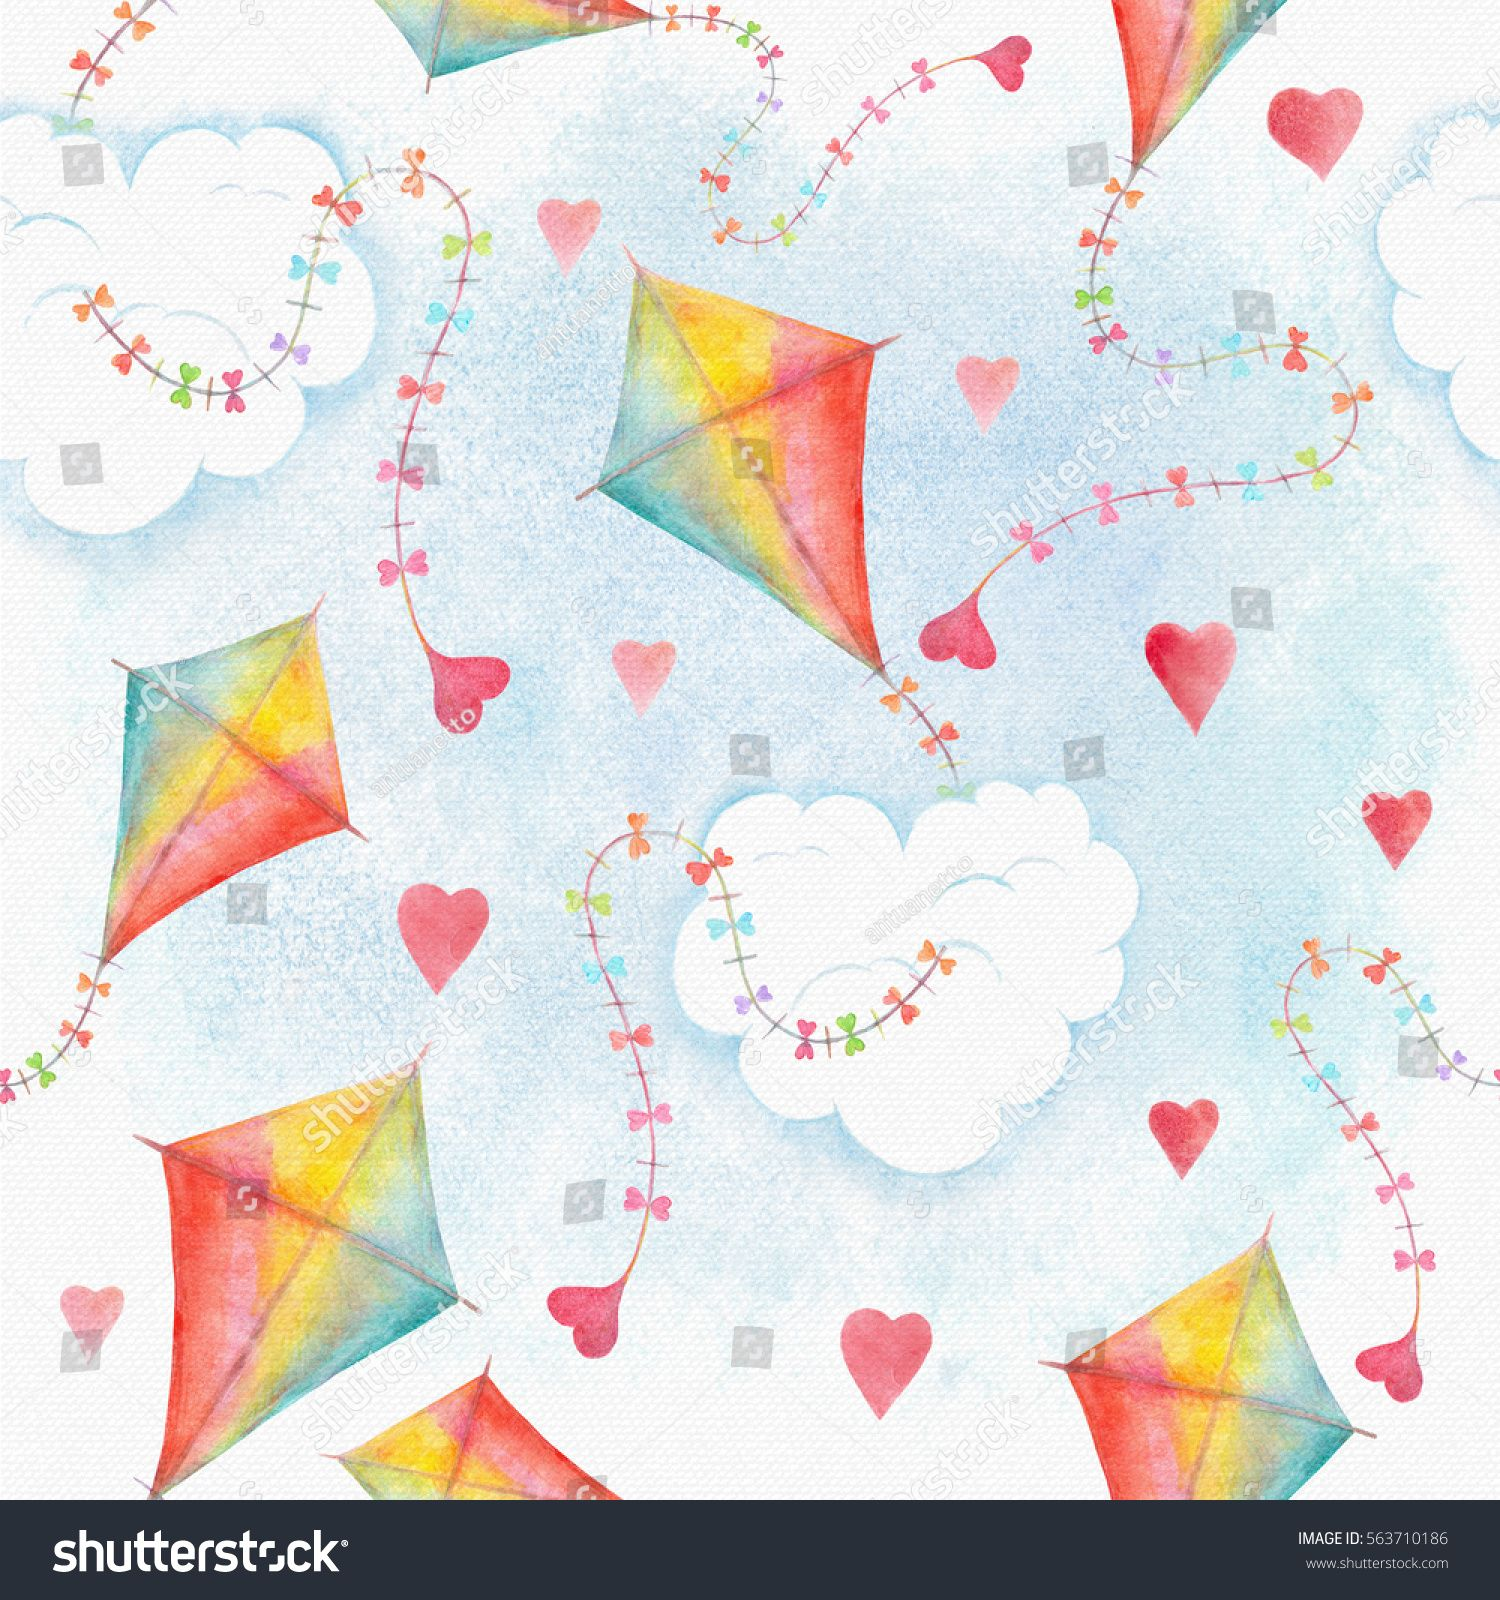 Watercolor Seamless Pattern Background With Flying Kite In Rainbow